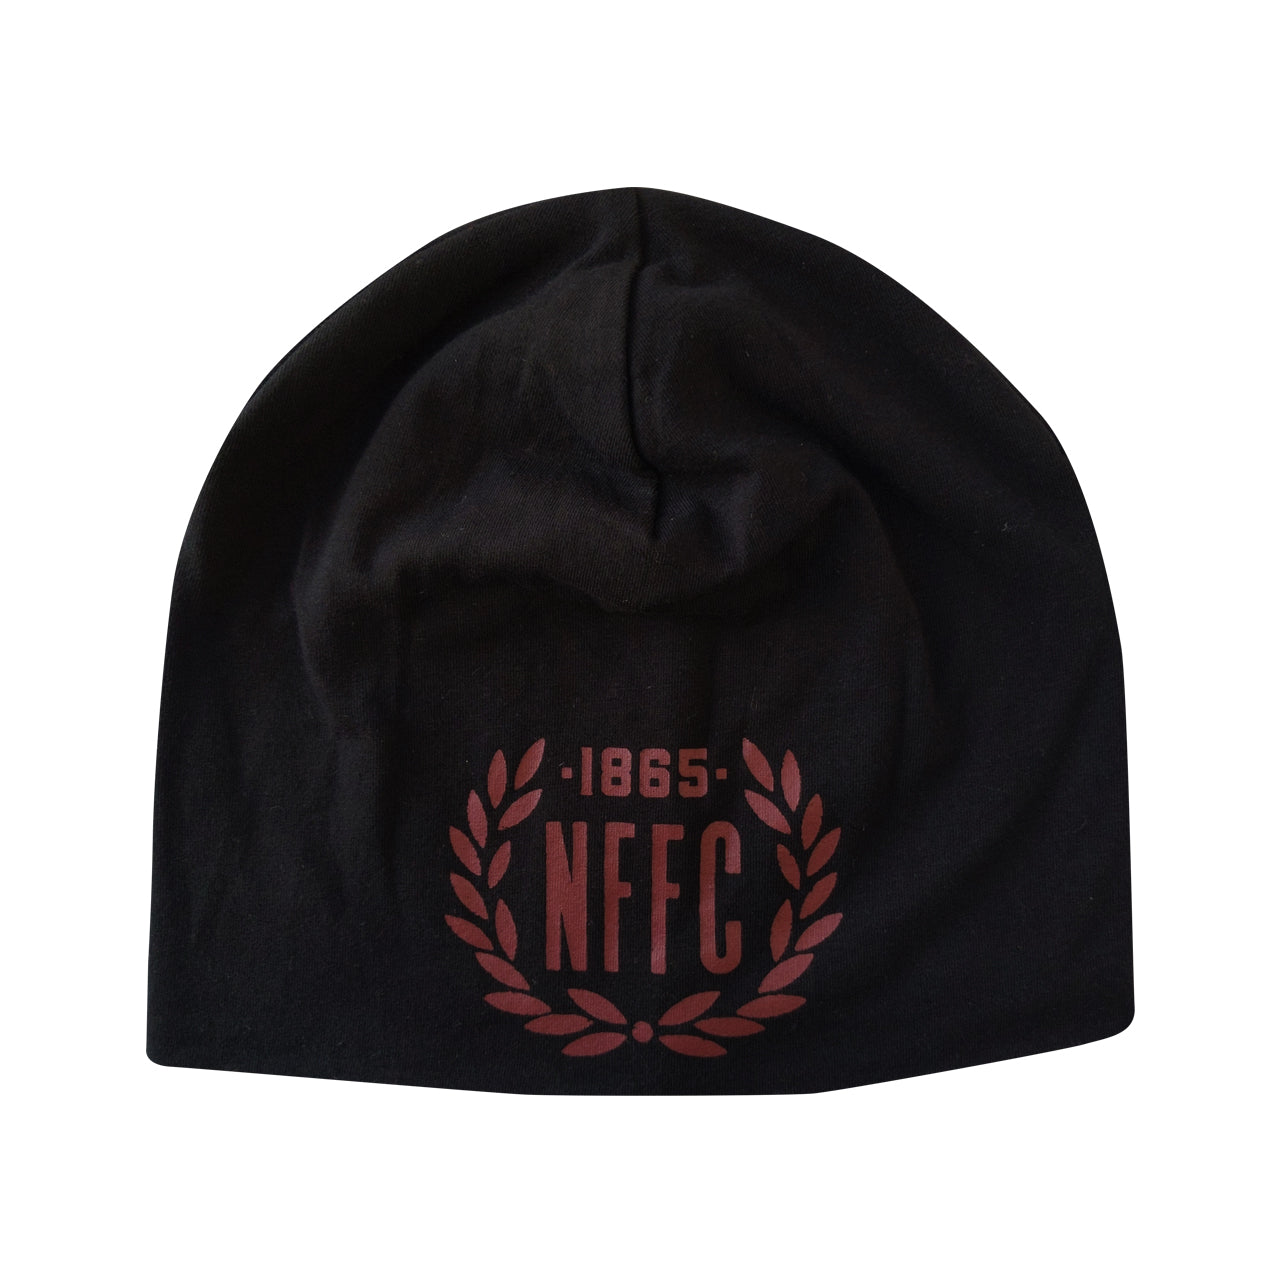 NFFC Adult Black Cotton Beanie - Nottingham Forest